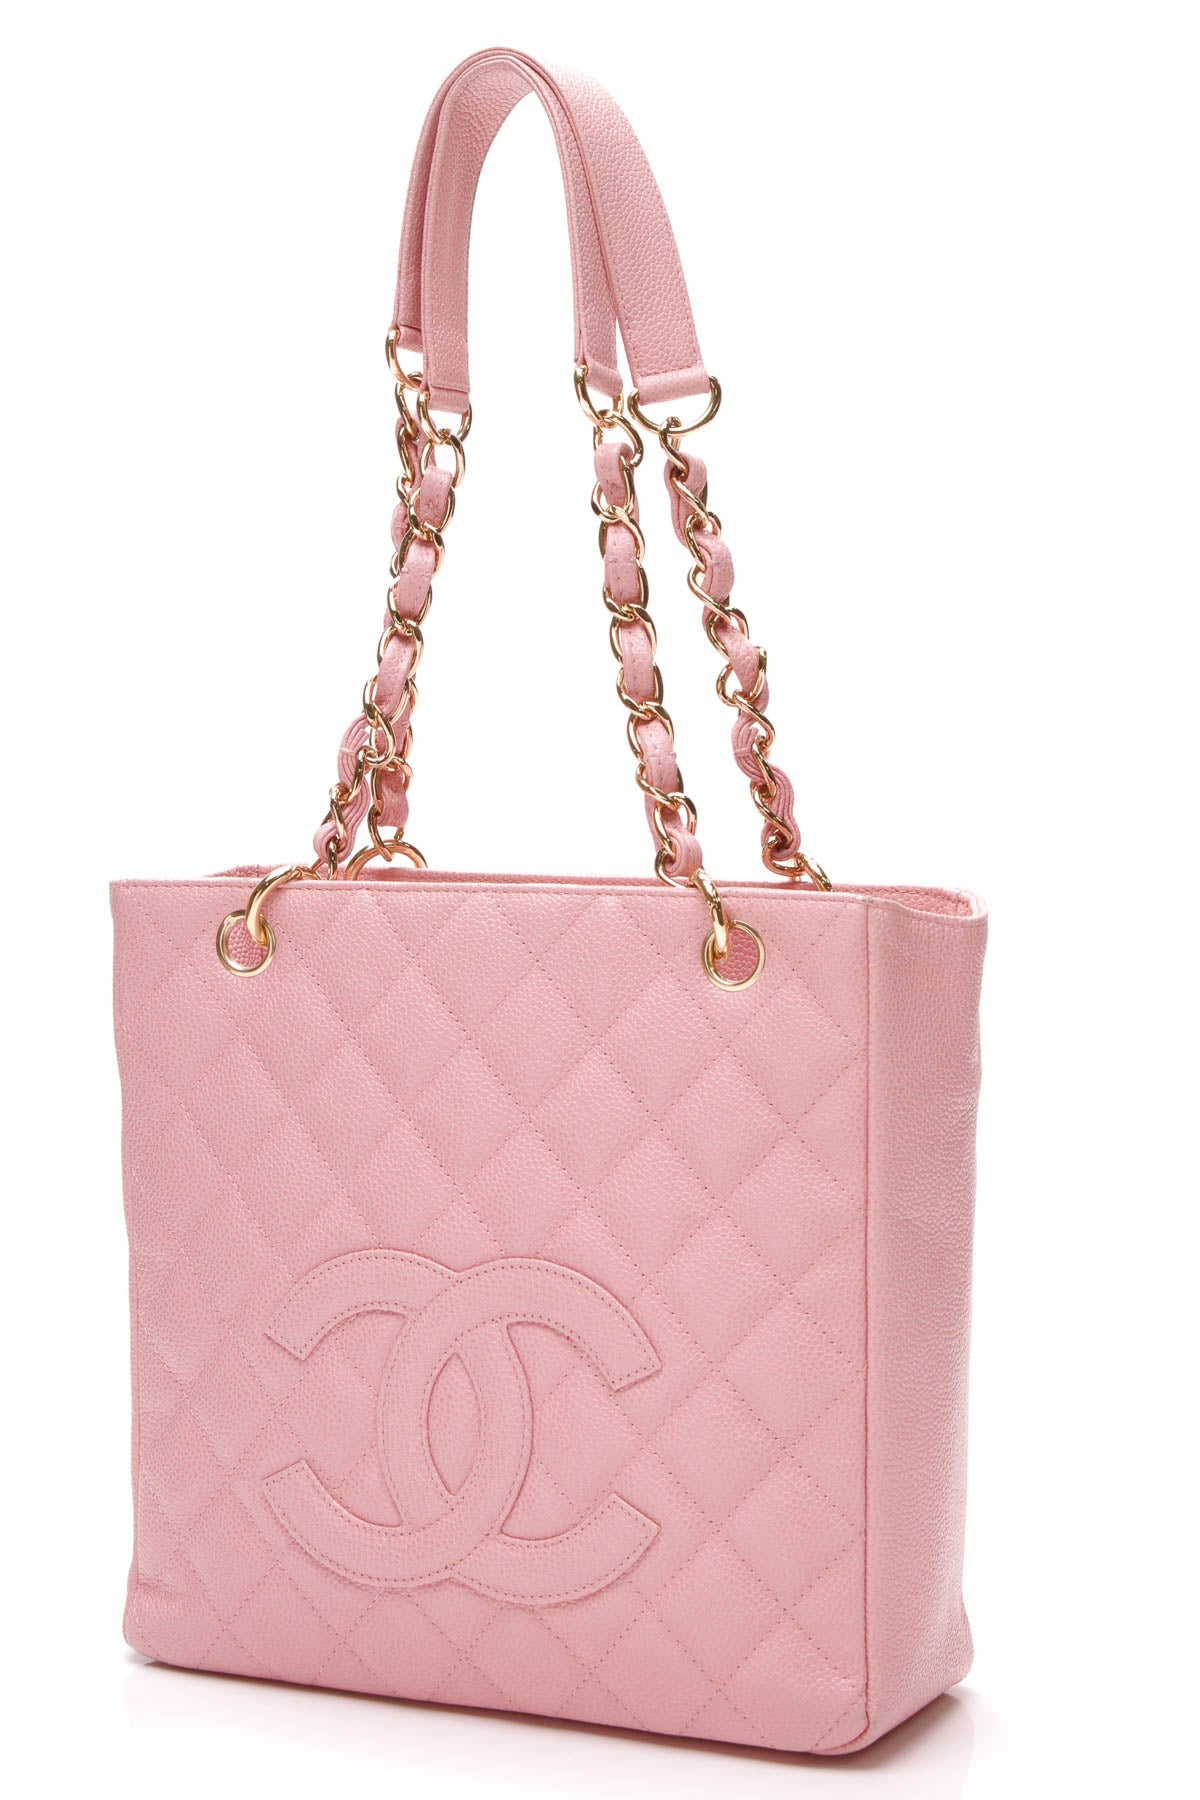 ecaf93ffb72cdd Chanel PST Petite Shopping Tote Bag - Pink Caviar – Couture USA